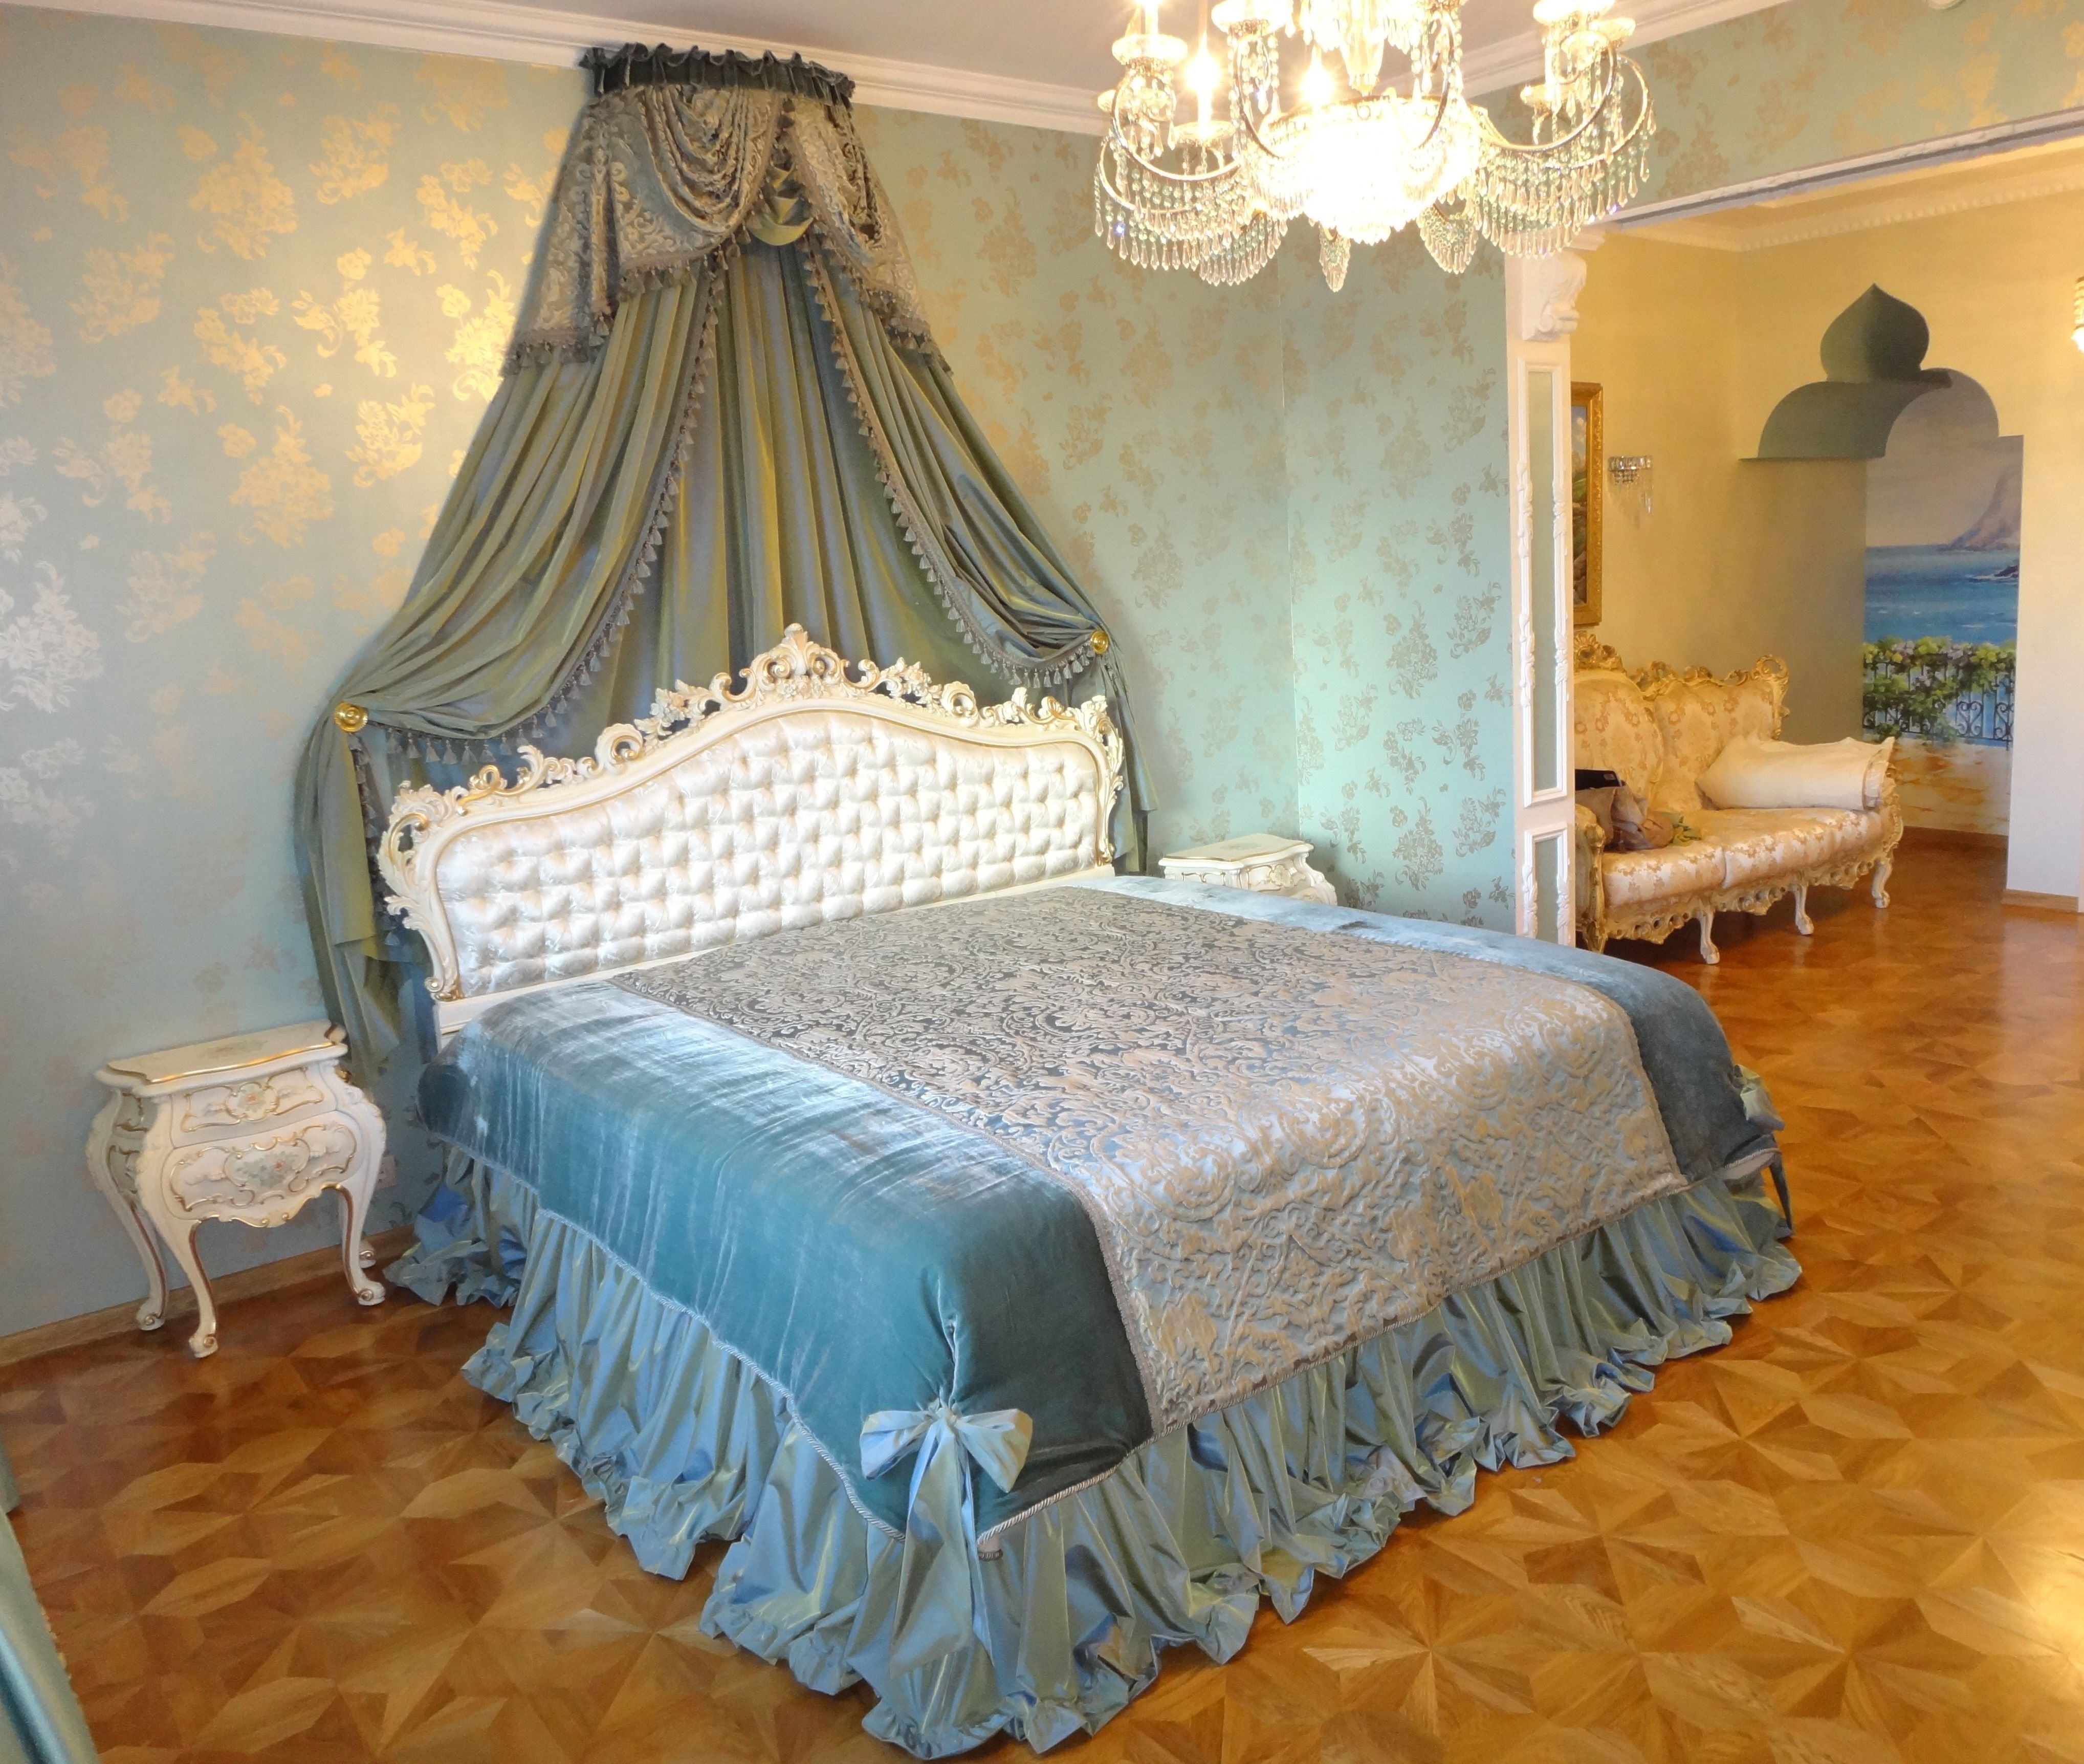 bedspread curtains r classics curtain oversized pin fitted room country bed bedspreads color